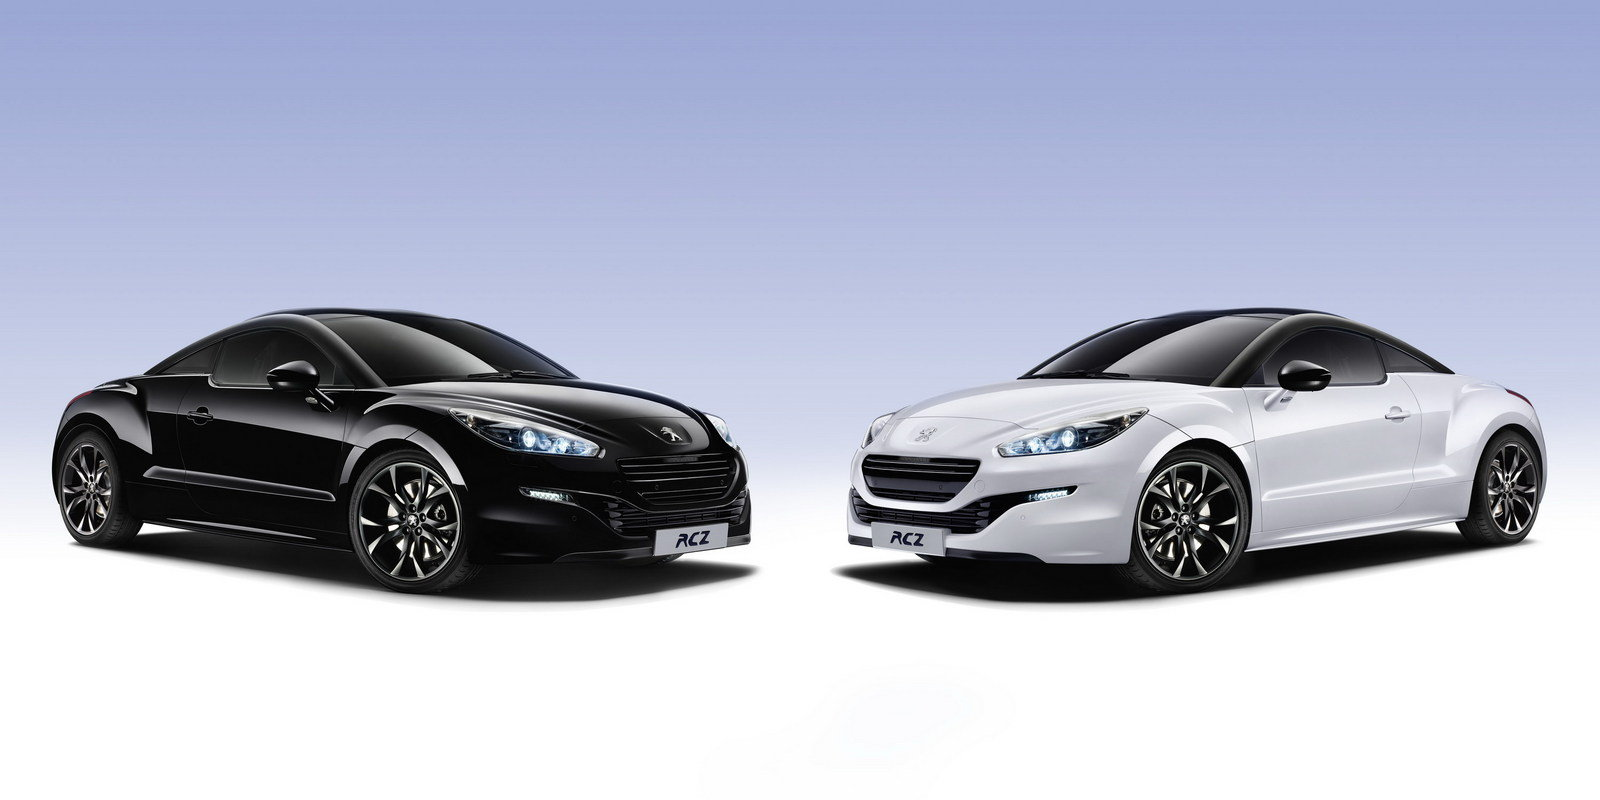 2013 peugeot rcz magnetic limited edition review top speed. Black Bedroom Furniture Sets. Home Design Ideas